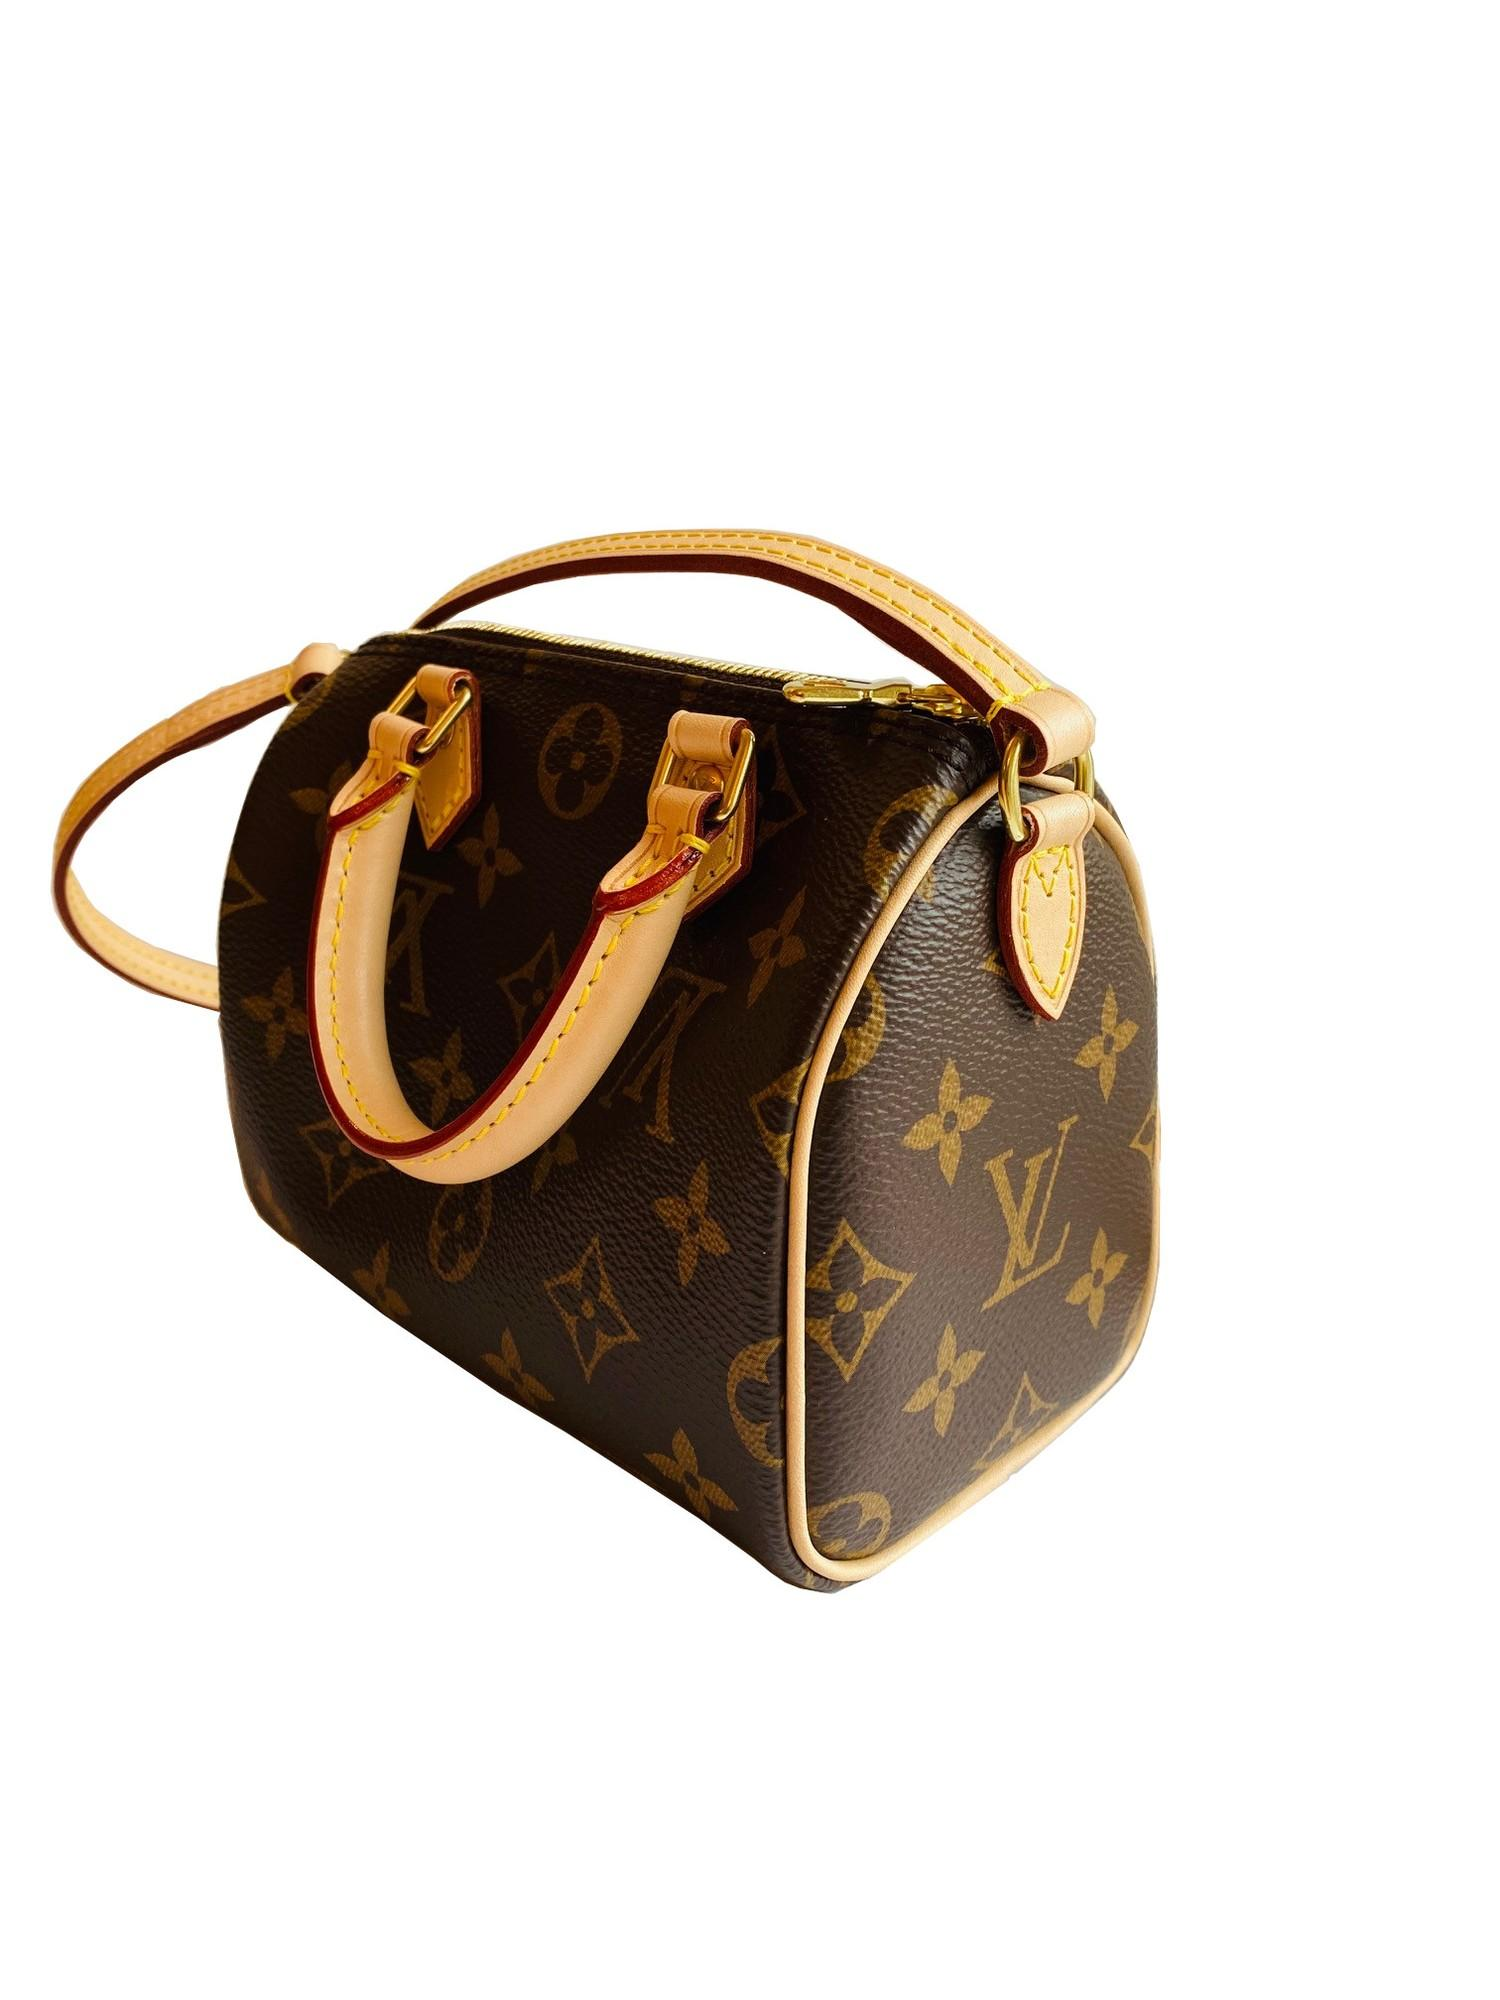 A Louis Vuitton Nano Speedy Monogram Canvas, as the name suggests the Nano Speedy is a miniature - Image 3 of 4